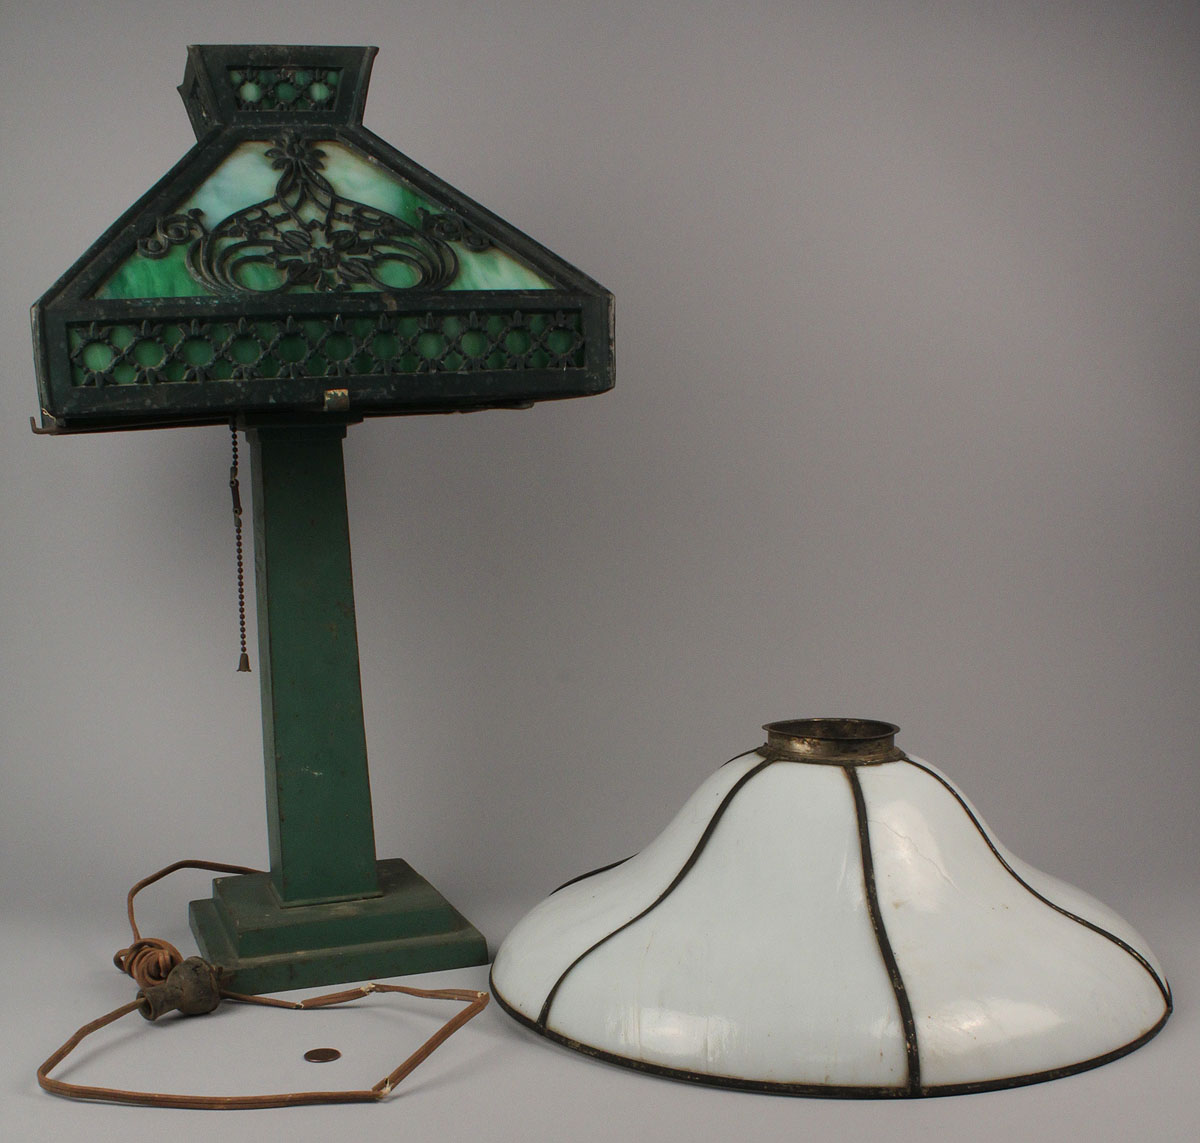 Lot 713 Mission Style Slag Glass Lamp Amp Shade